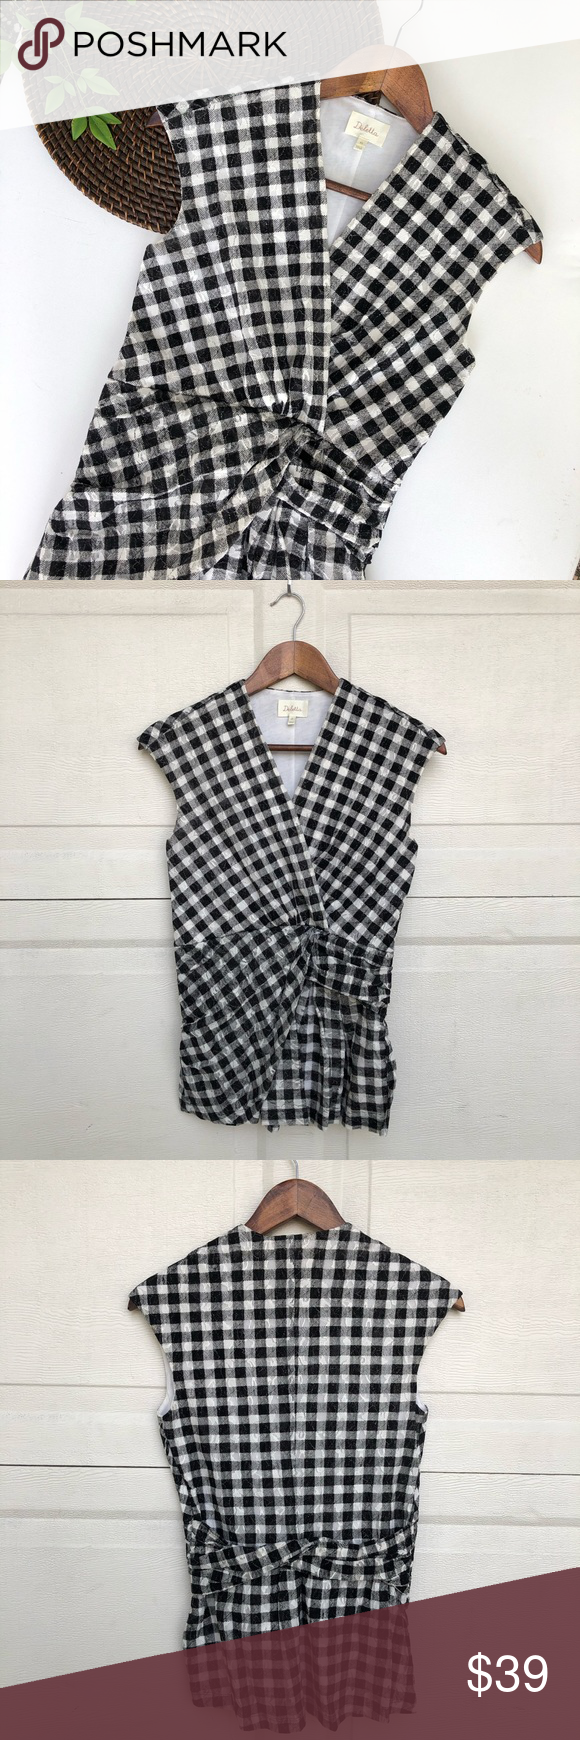 Anthro Deletta l Black White Gingham Blouse XS Anthro Deletta Womens Black White Gingham Plaid Blouse Sleeveless XS  Very Good Pre Owned Condition  No holes stains or missing buttons   Measurements Approximate Laying Flat  Chest 15 in Length 25.5 in  Fa-1119-0630  Doxp Anthropologie Tops Blouses